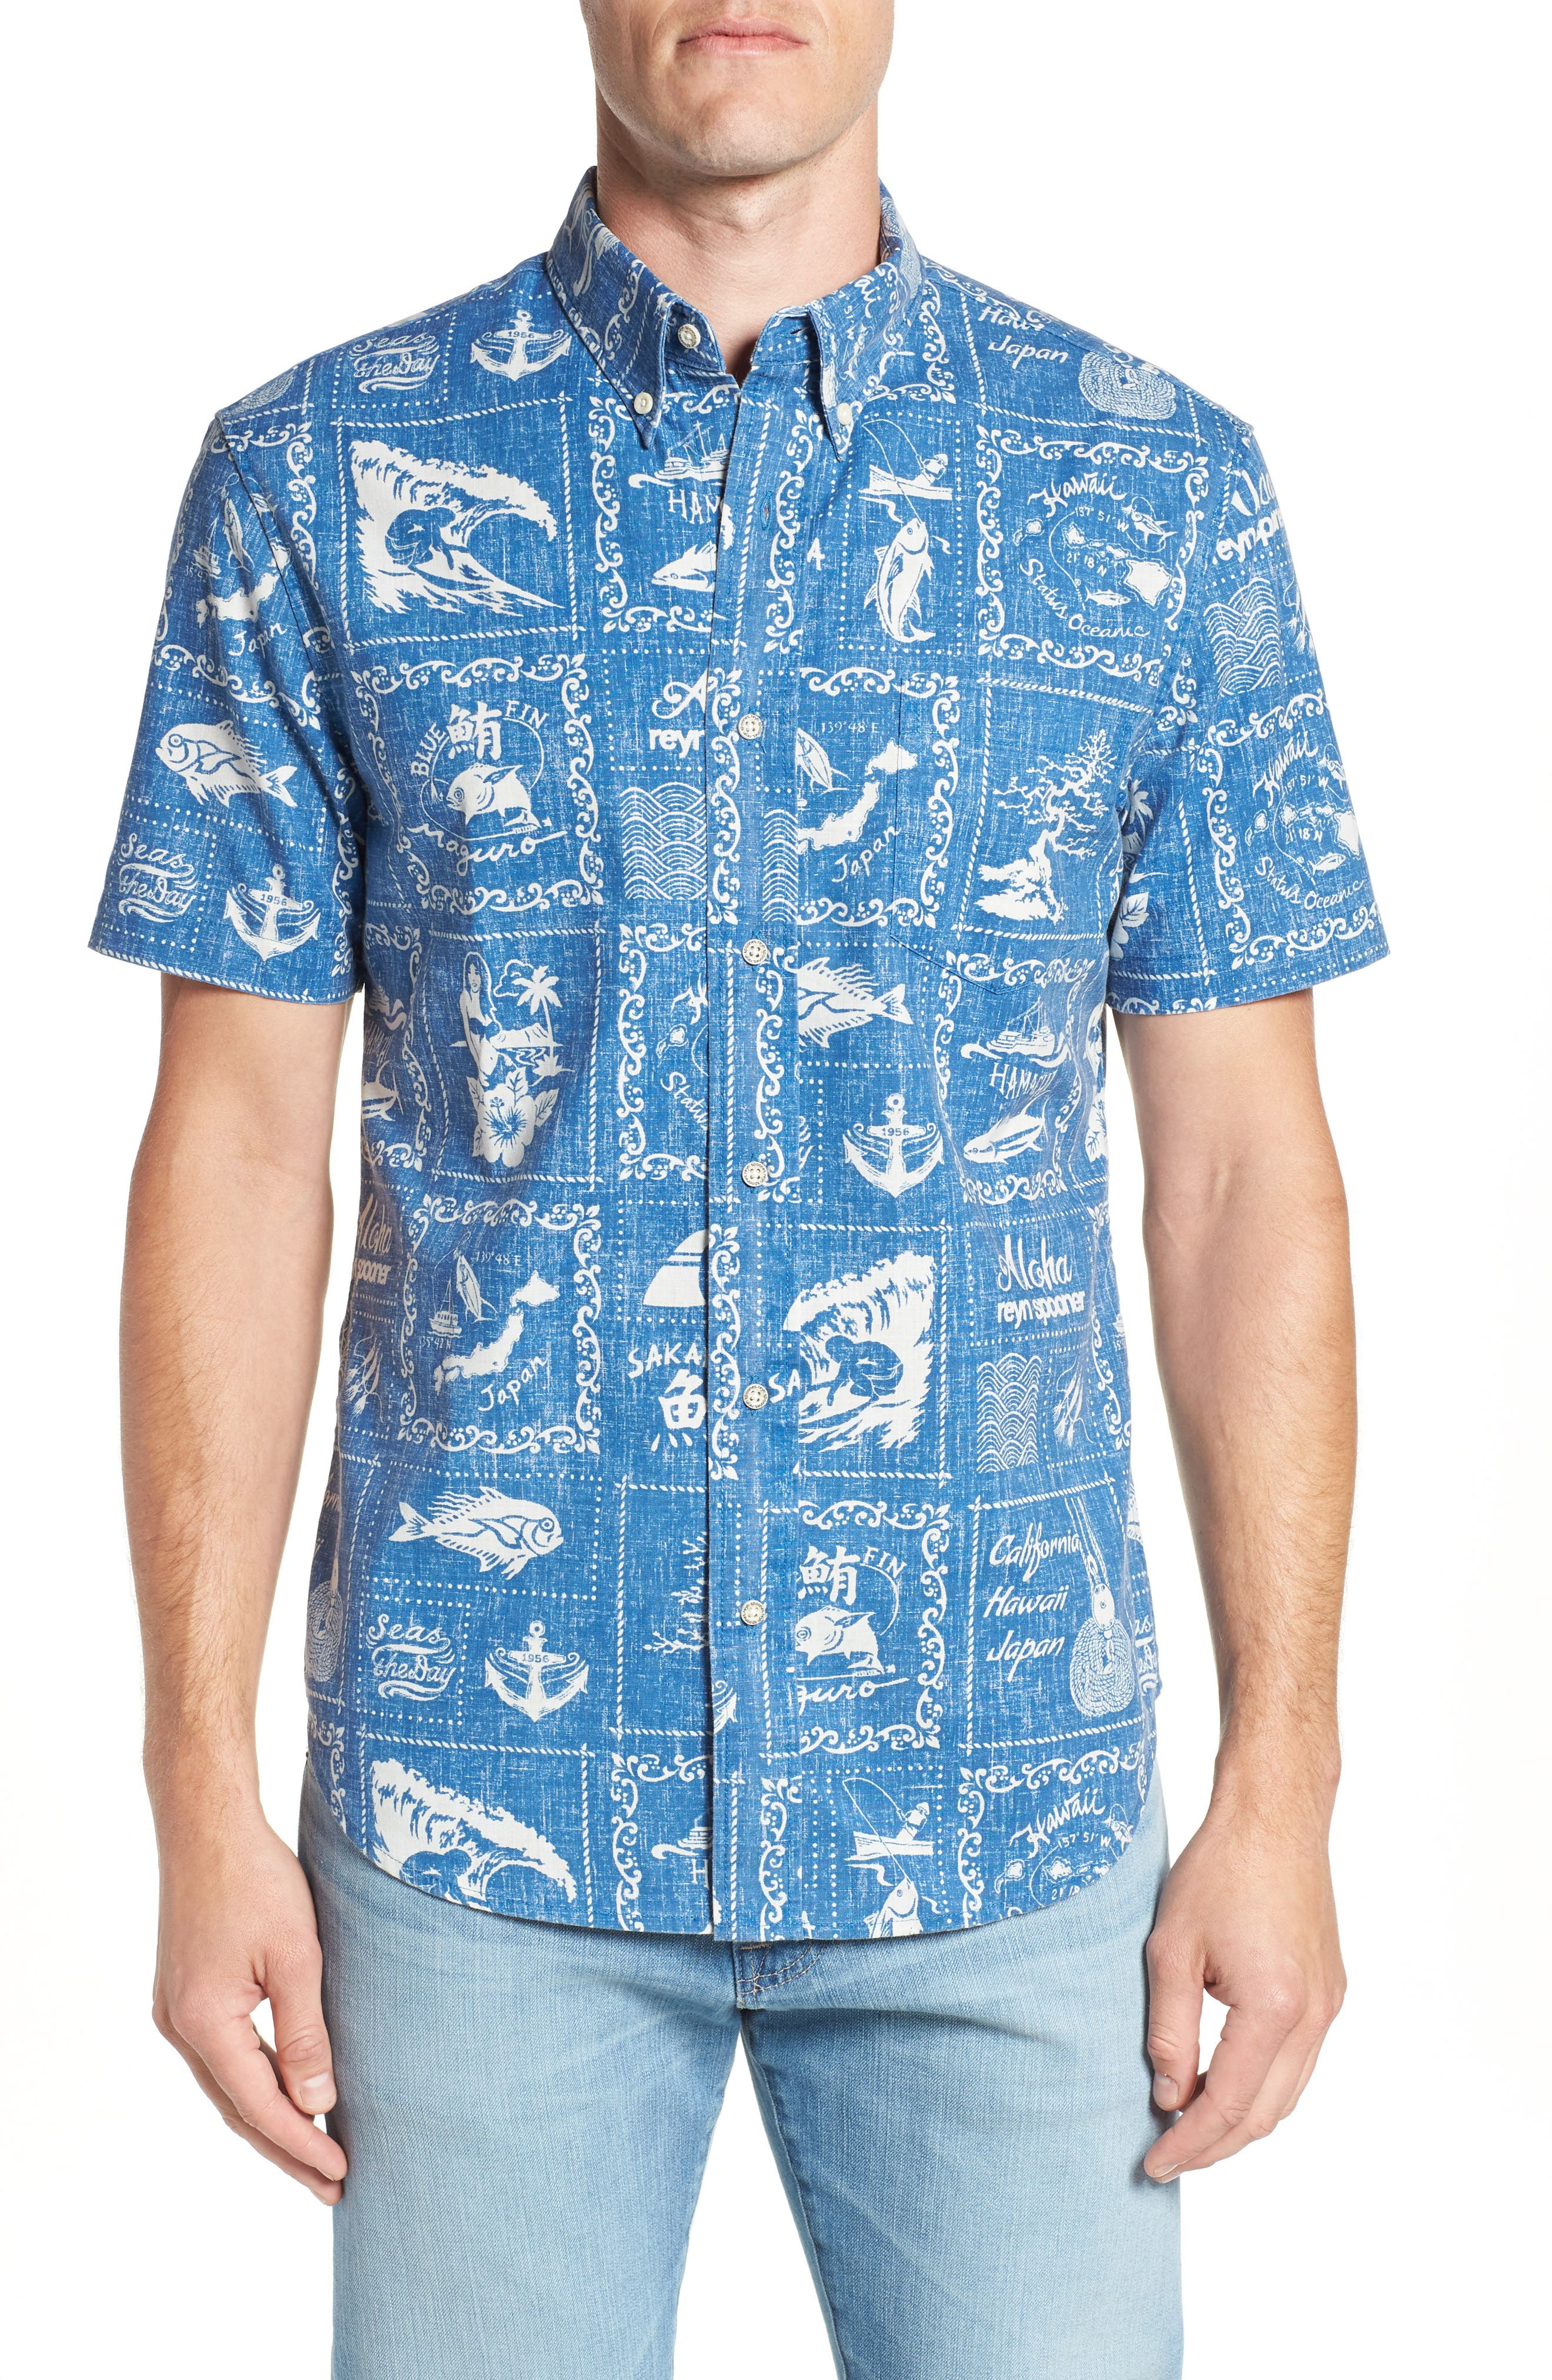 Stories from the East Regular Fit Sport Shirt,                         Main,                         color, MARINE